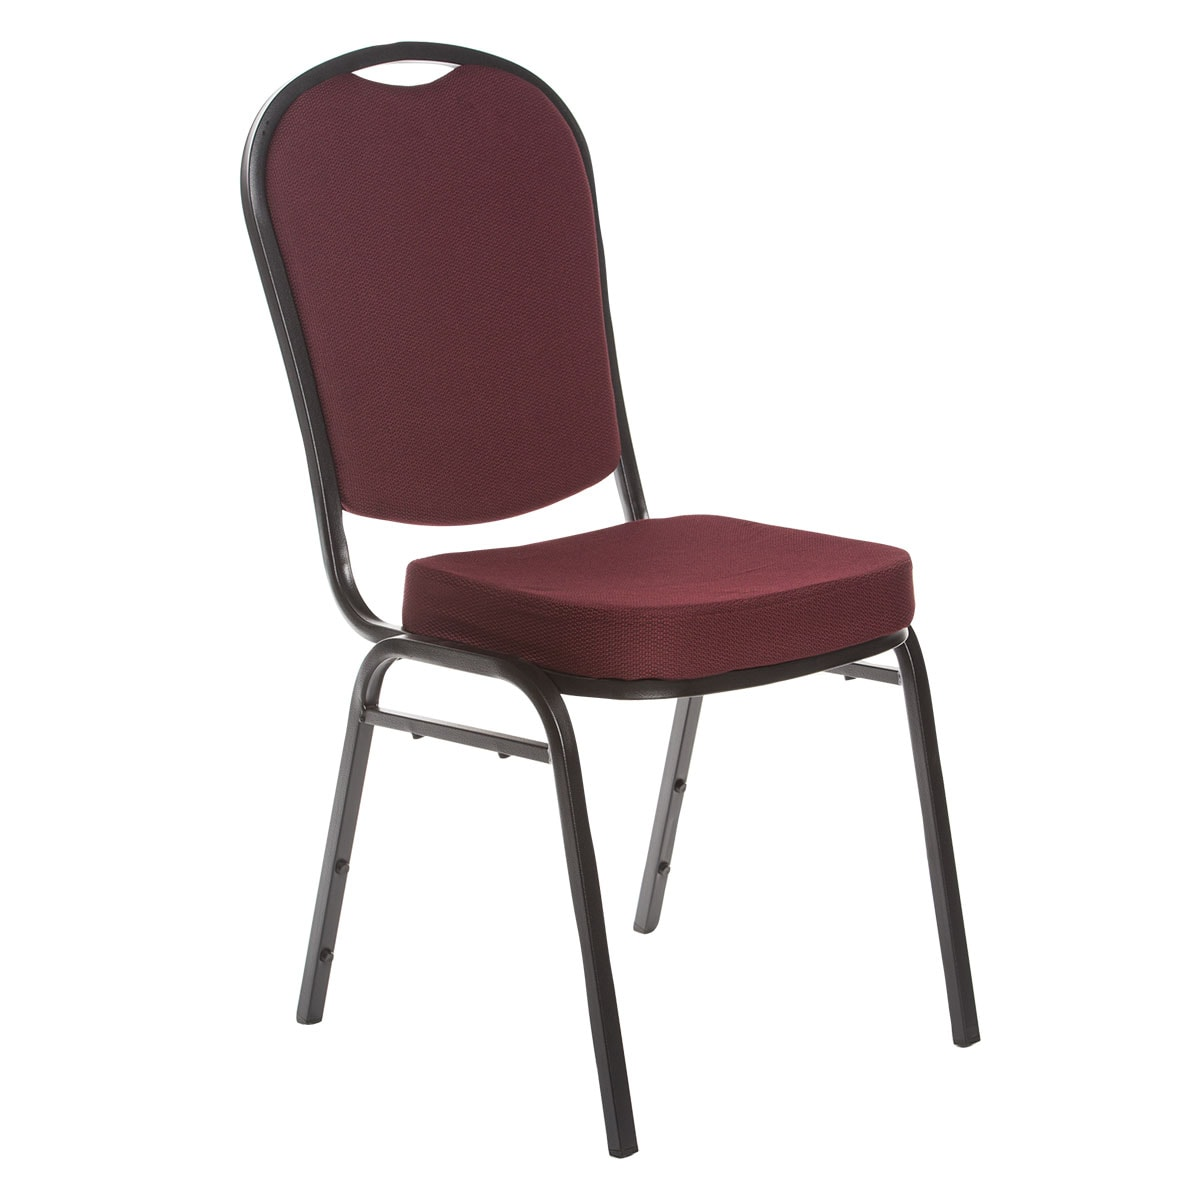 Burgundy stacking chair